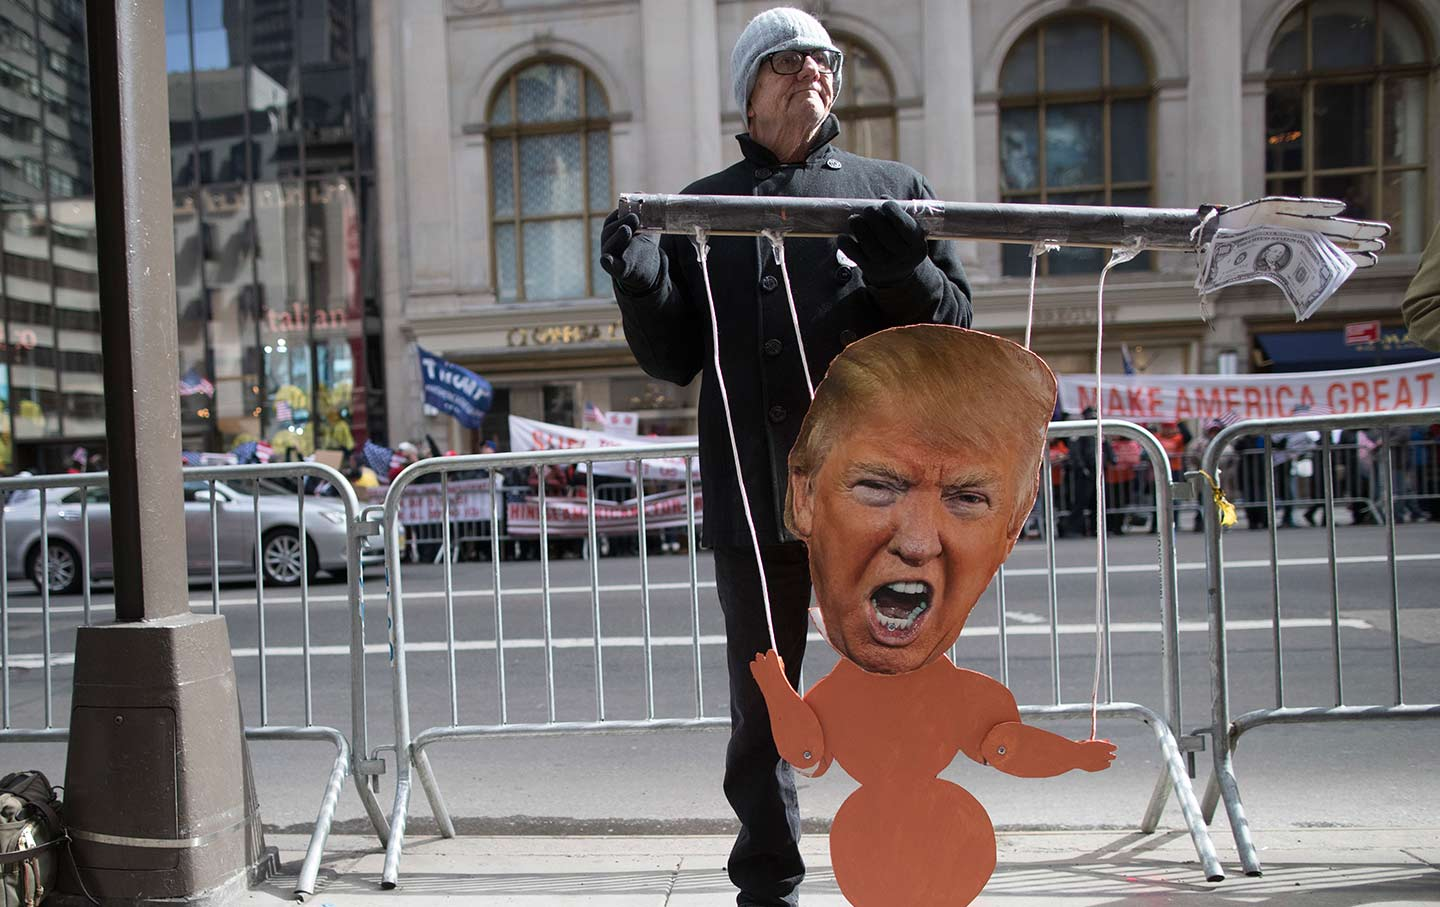 A Protester holds a Trump puppet